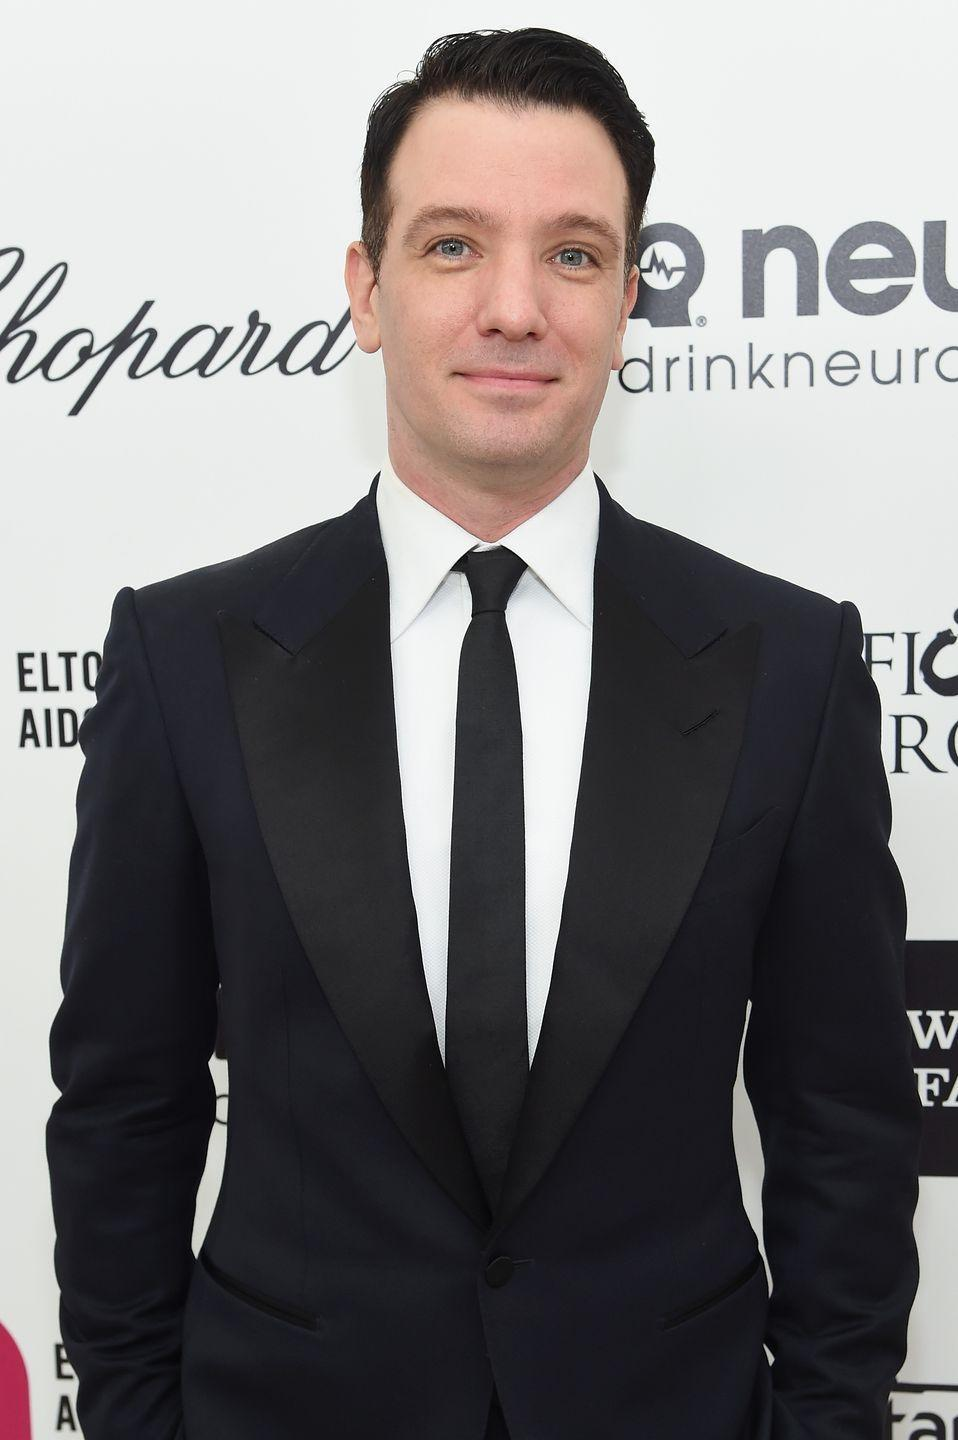 """<p>The *NSYNC member <a href=""""https://www.popsugar.com/celebrity/photo-gallery/37979874/image/37987003/JC-Chasez"""" rel=""""nofollow noopener"""" target=""""_blank"""" data-ylk=""""slk:was adopted"""" class=""""link rapid-noclick-resp"""">was adopted</a> when he was 5 years old by his birth mother's former foster parents, Roy and Karen Chasez.</p><p>JC once <a href=""""https://youtu.be/PKPzDuMvvEA?t=6"""" rel=""""nofollow noopener"""" target=""""_blank"""" data-ylk=""""slk:told E! News"""" class=""""link rapid-noclick-resp"""">told E! News</a>, """"I was fortunate enough to have them take me in when I was 5. They've loved me and I've loved them ever since.""""</p>"""